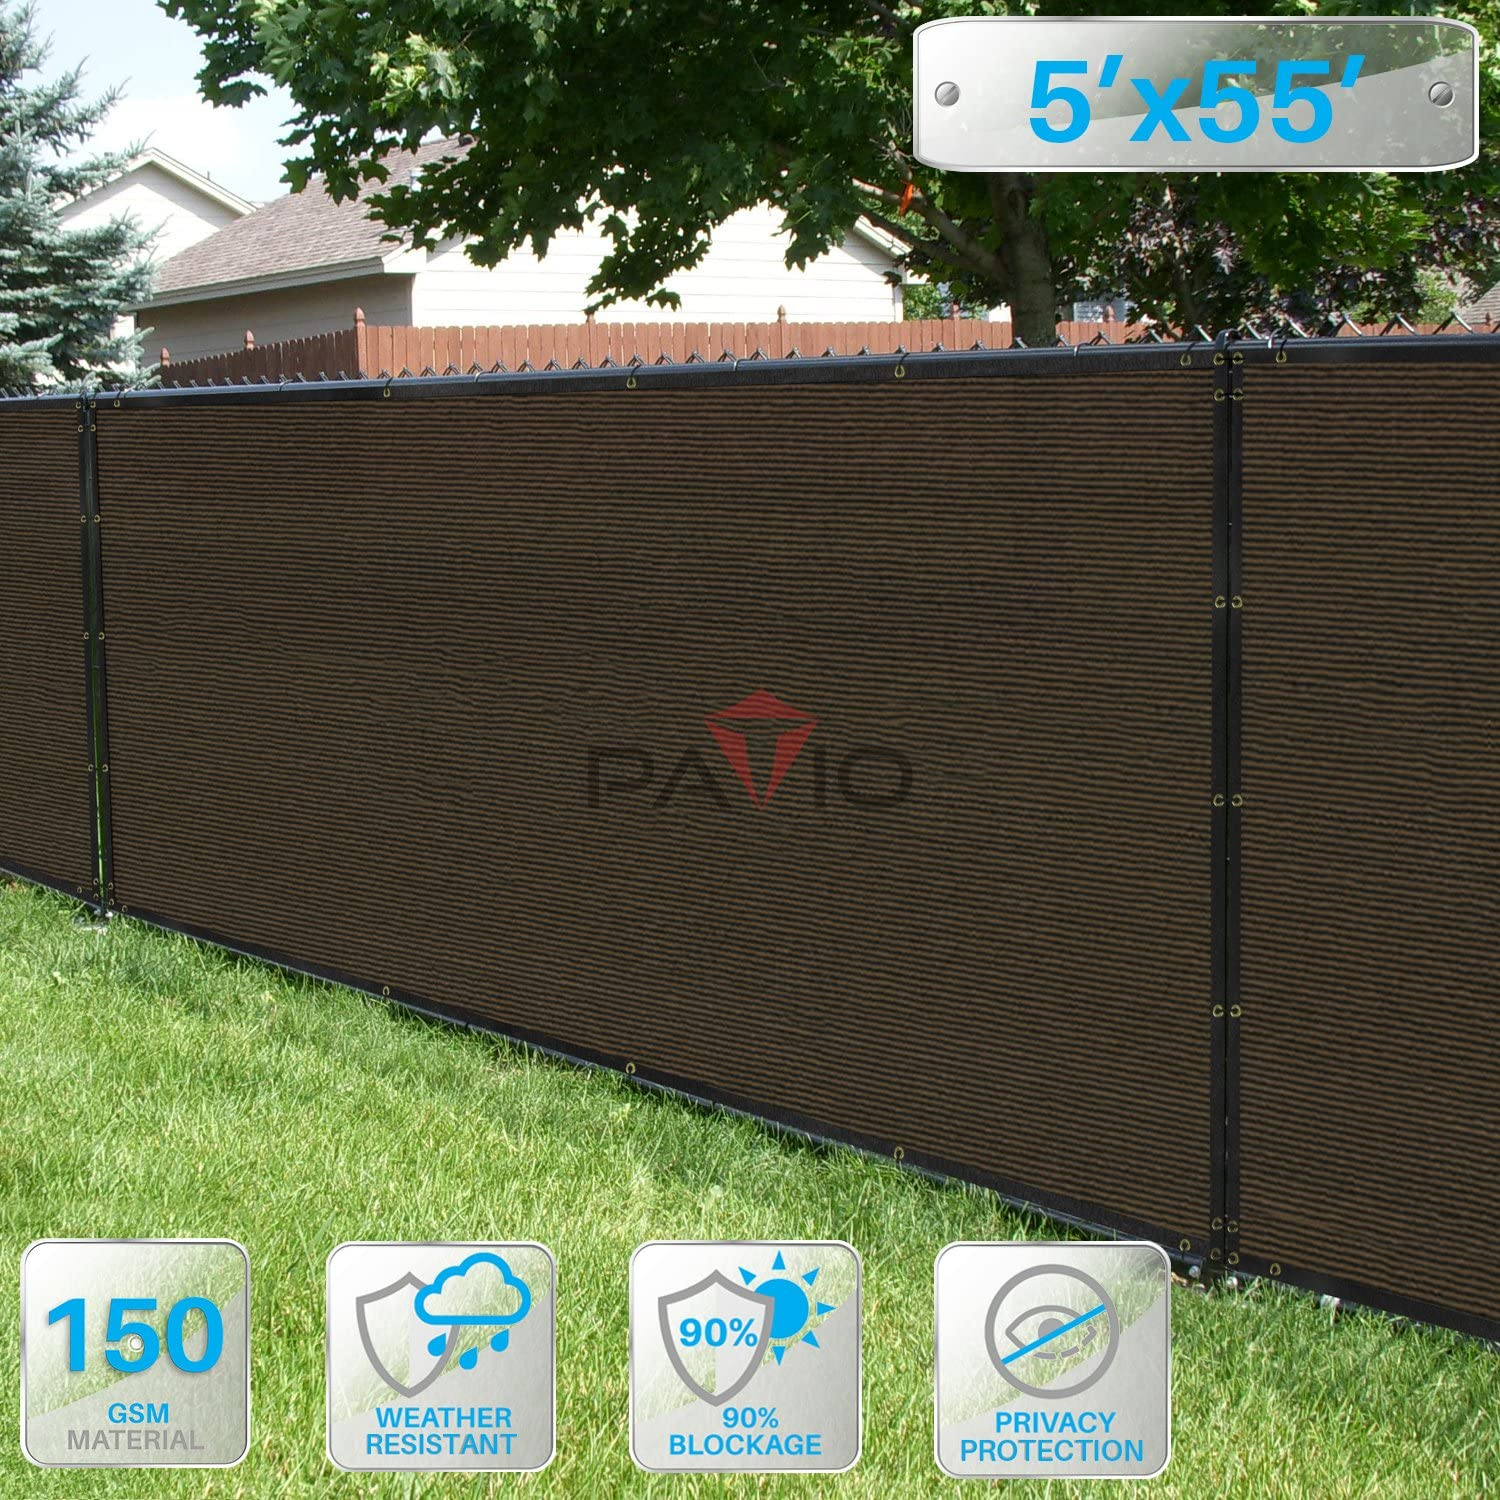 Patio Paradise 5 x 55 Privacy Screen Fence in Brown, Commercial Grand Mesh Shade Fabric with Brass Gromment Outdoor Windscren – Custom